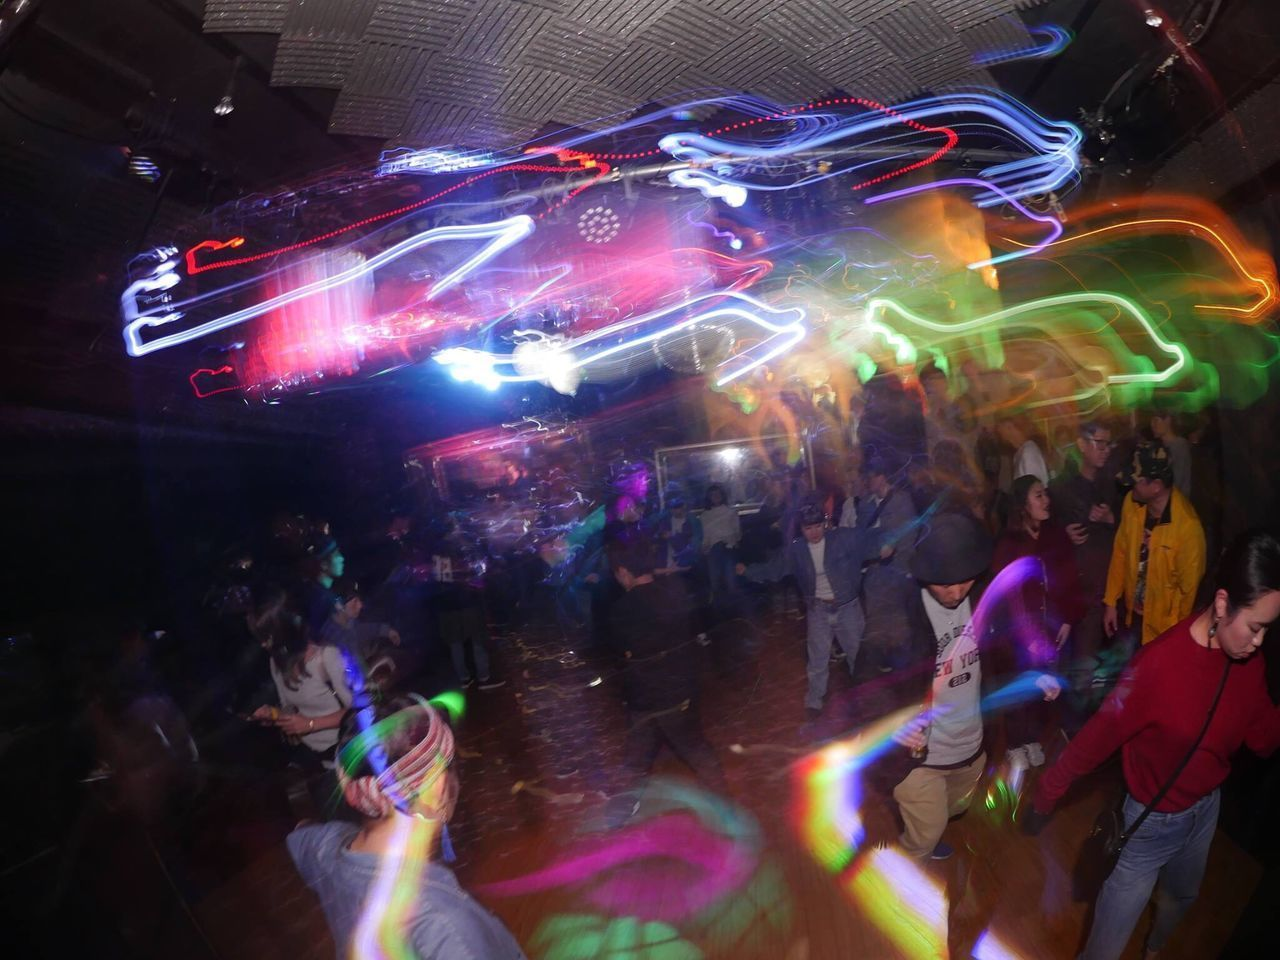 Illuminated Large Group Of People Nightclub Nightlife Multi Colored House Housemusic Housedance Music Real People Dancing Women Enjoyment Night Leisure Activity Fun Celebration Dance Floor Disco Lights Party - Social Event Crowd Disco Dancing Clubbing